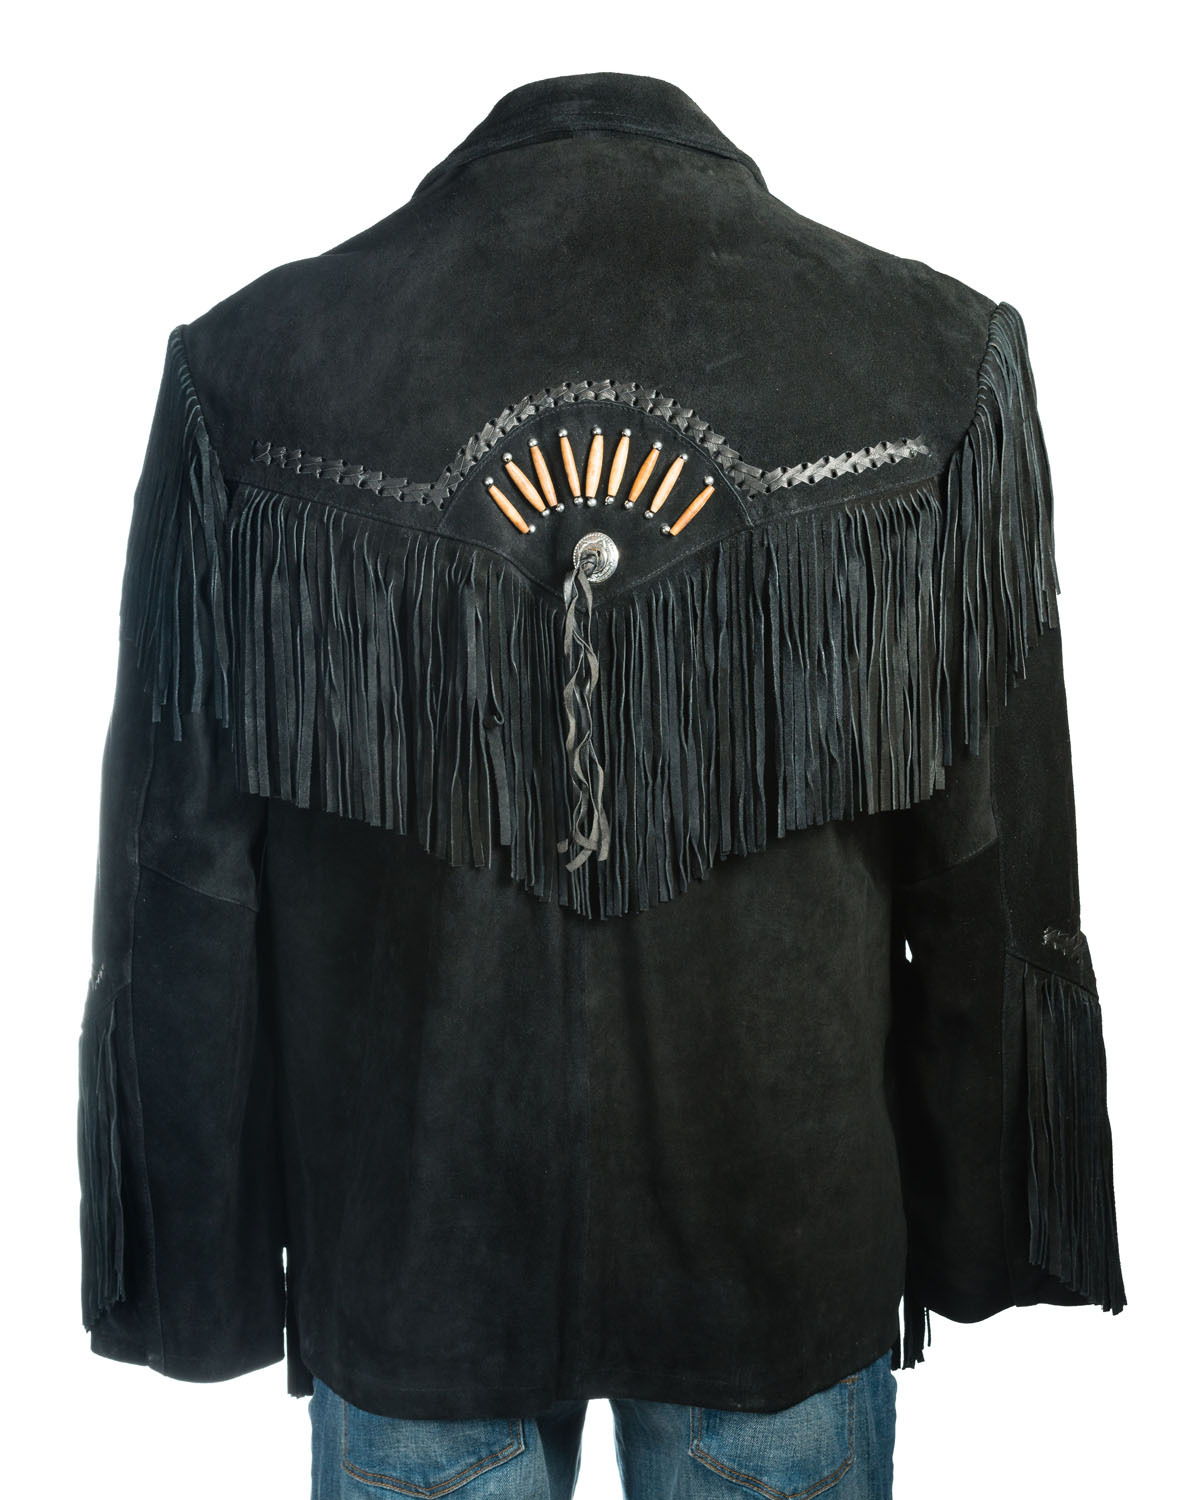 ff774cf44 Black Suede Native American Western Style Jacket with Fringe and ...